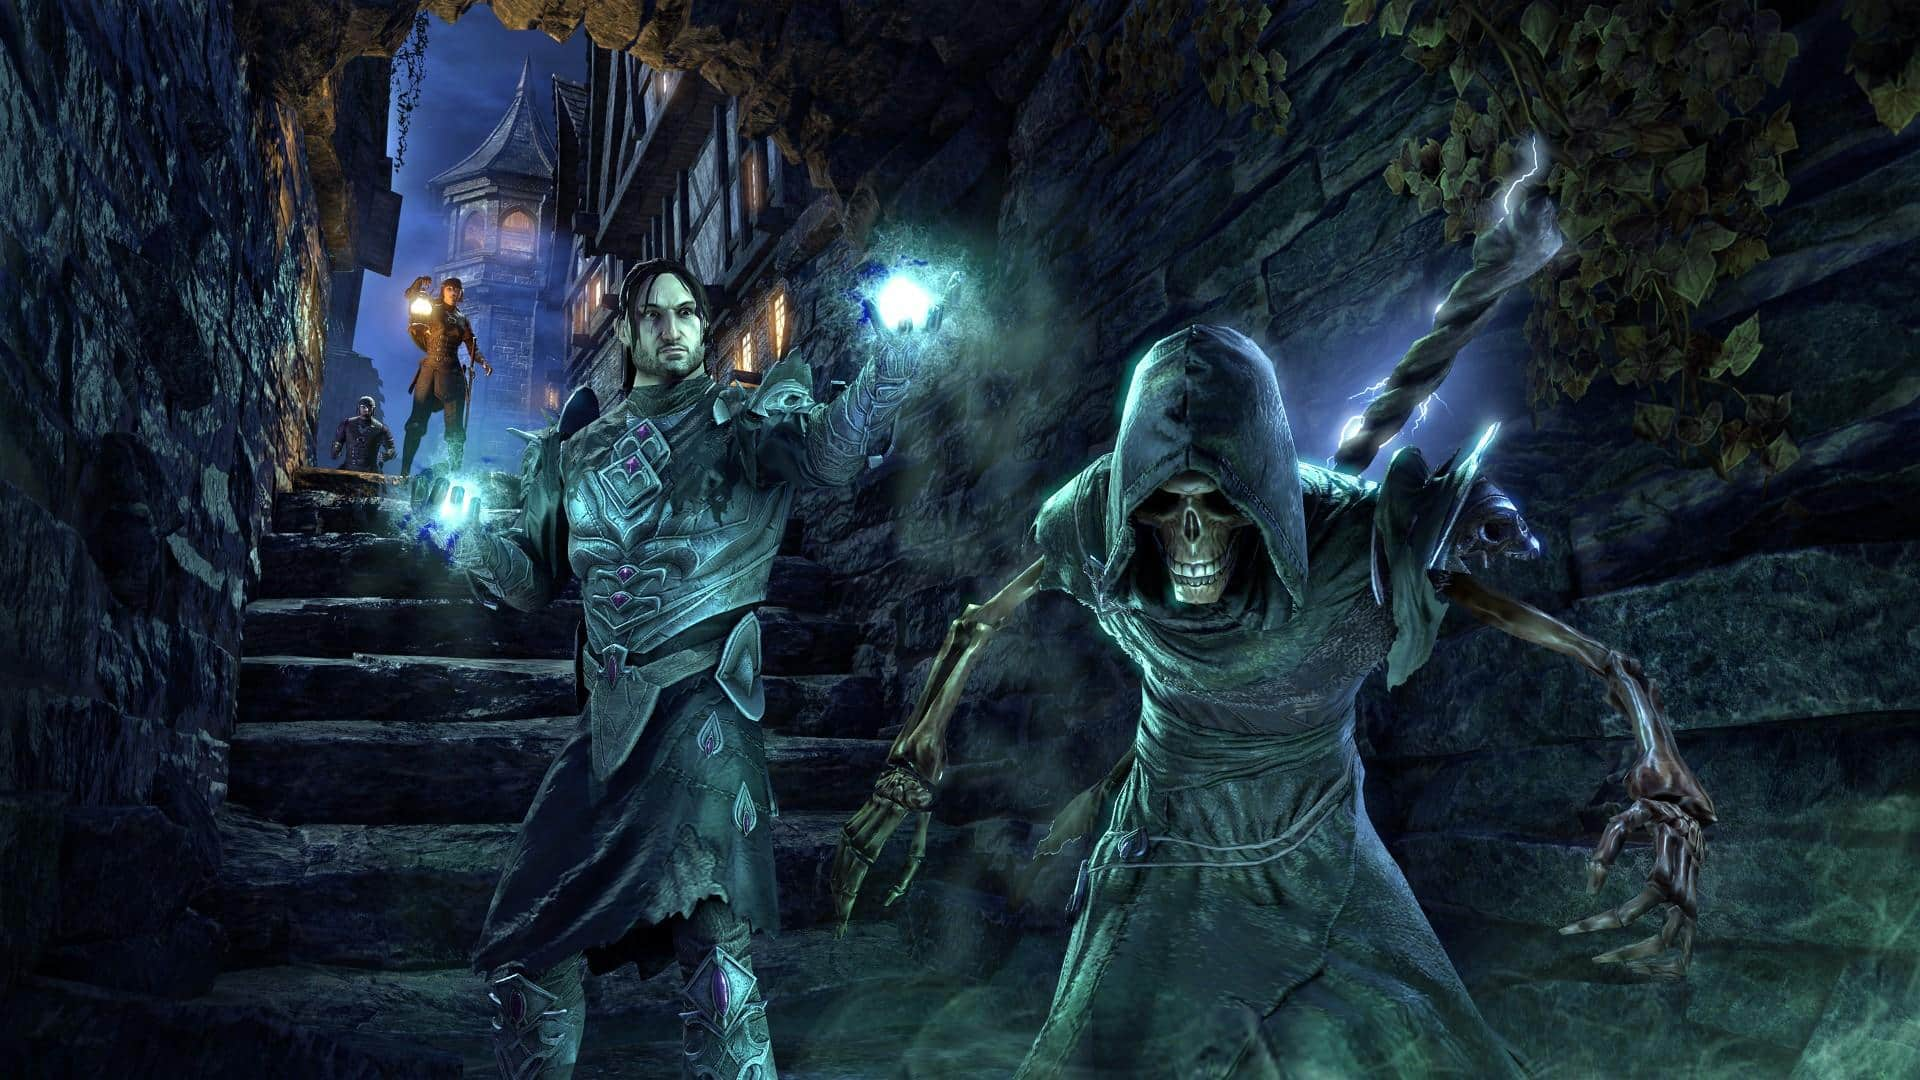 The Elder Scrolls Online: Elsweyr trailer shows off the